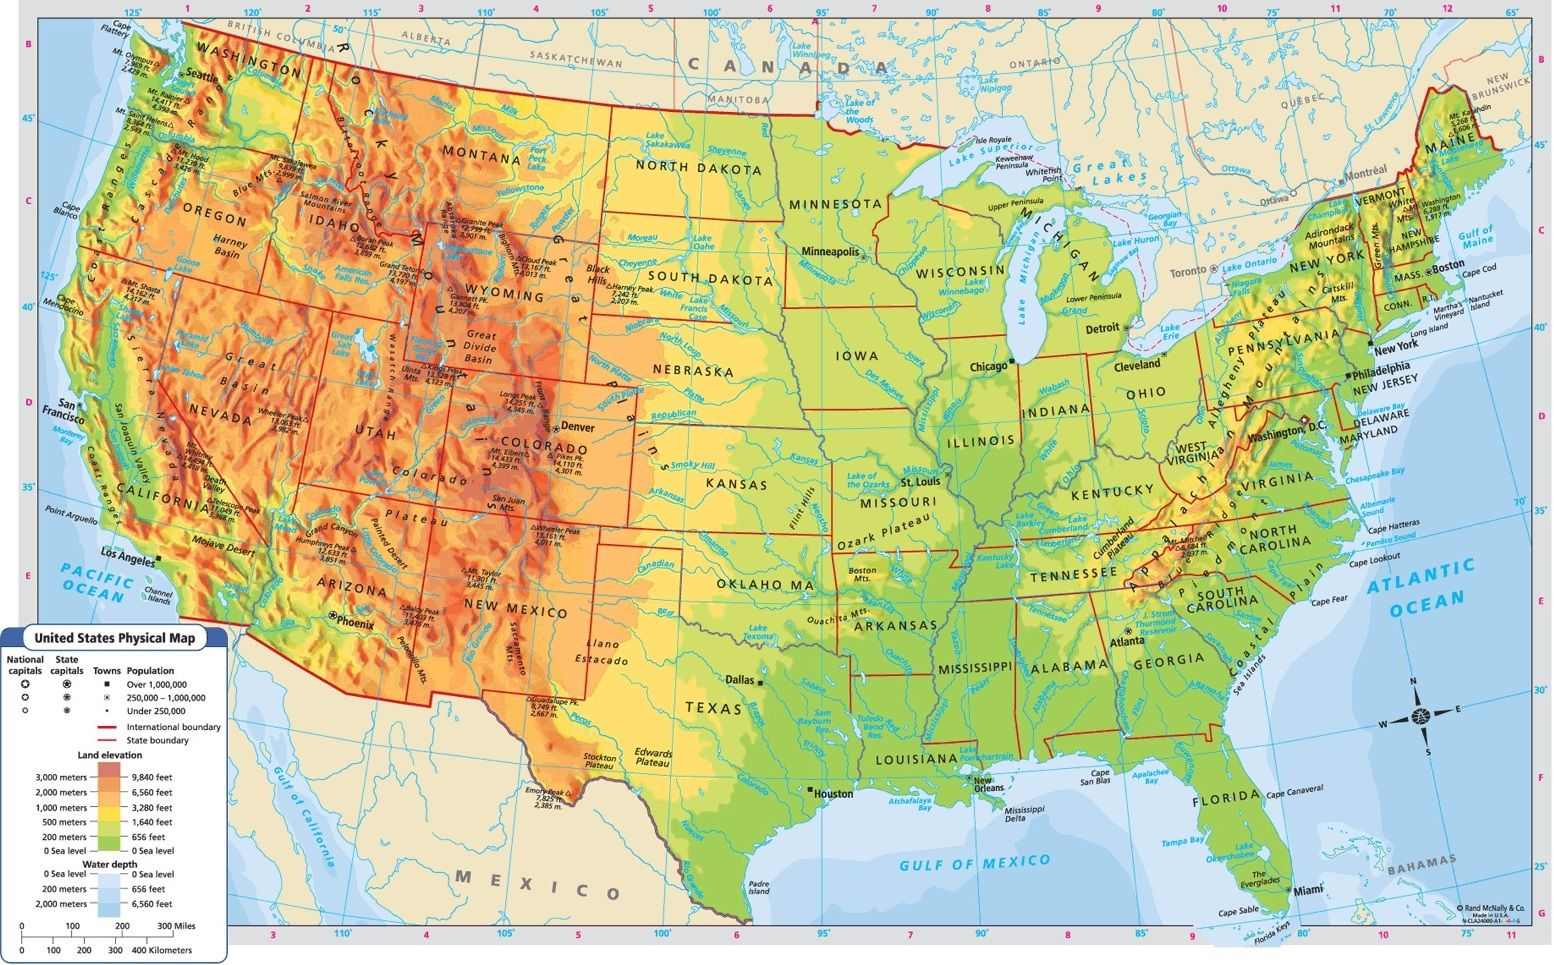 Pin By Erica Xenne On House Of Art Us Geography Us Map - Topographic-map-of-us-states